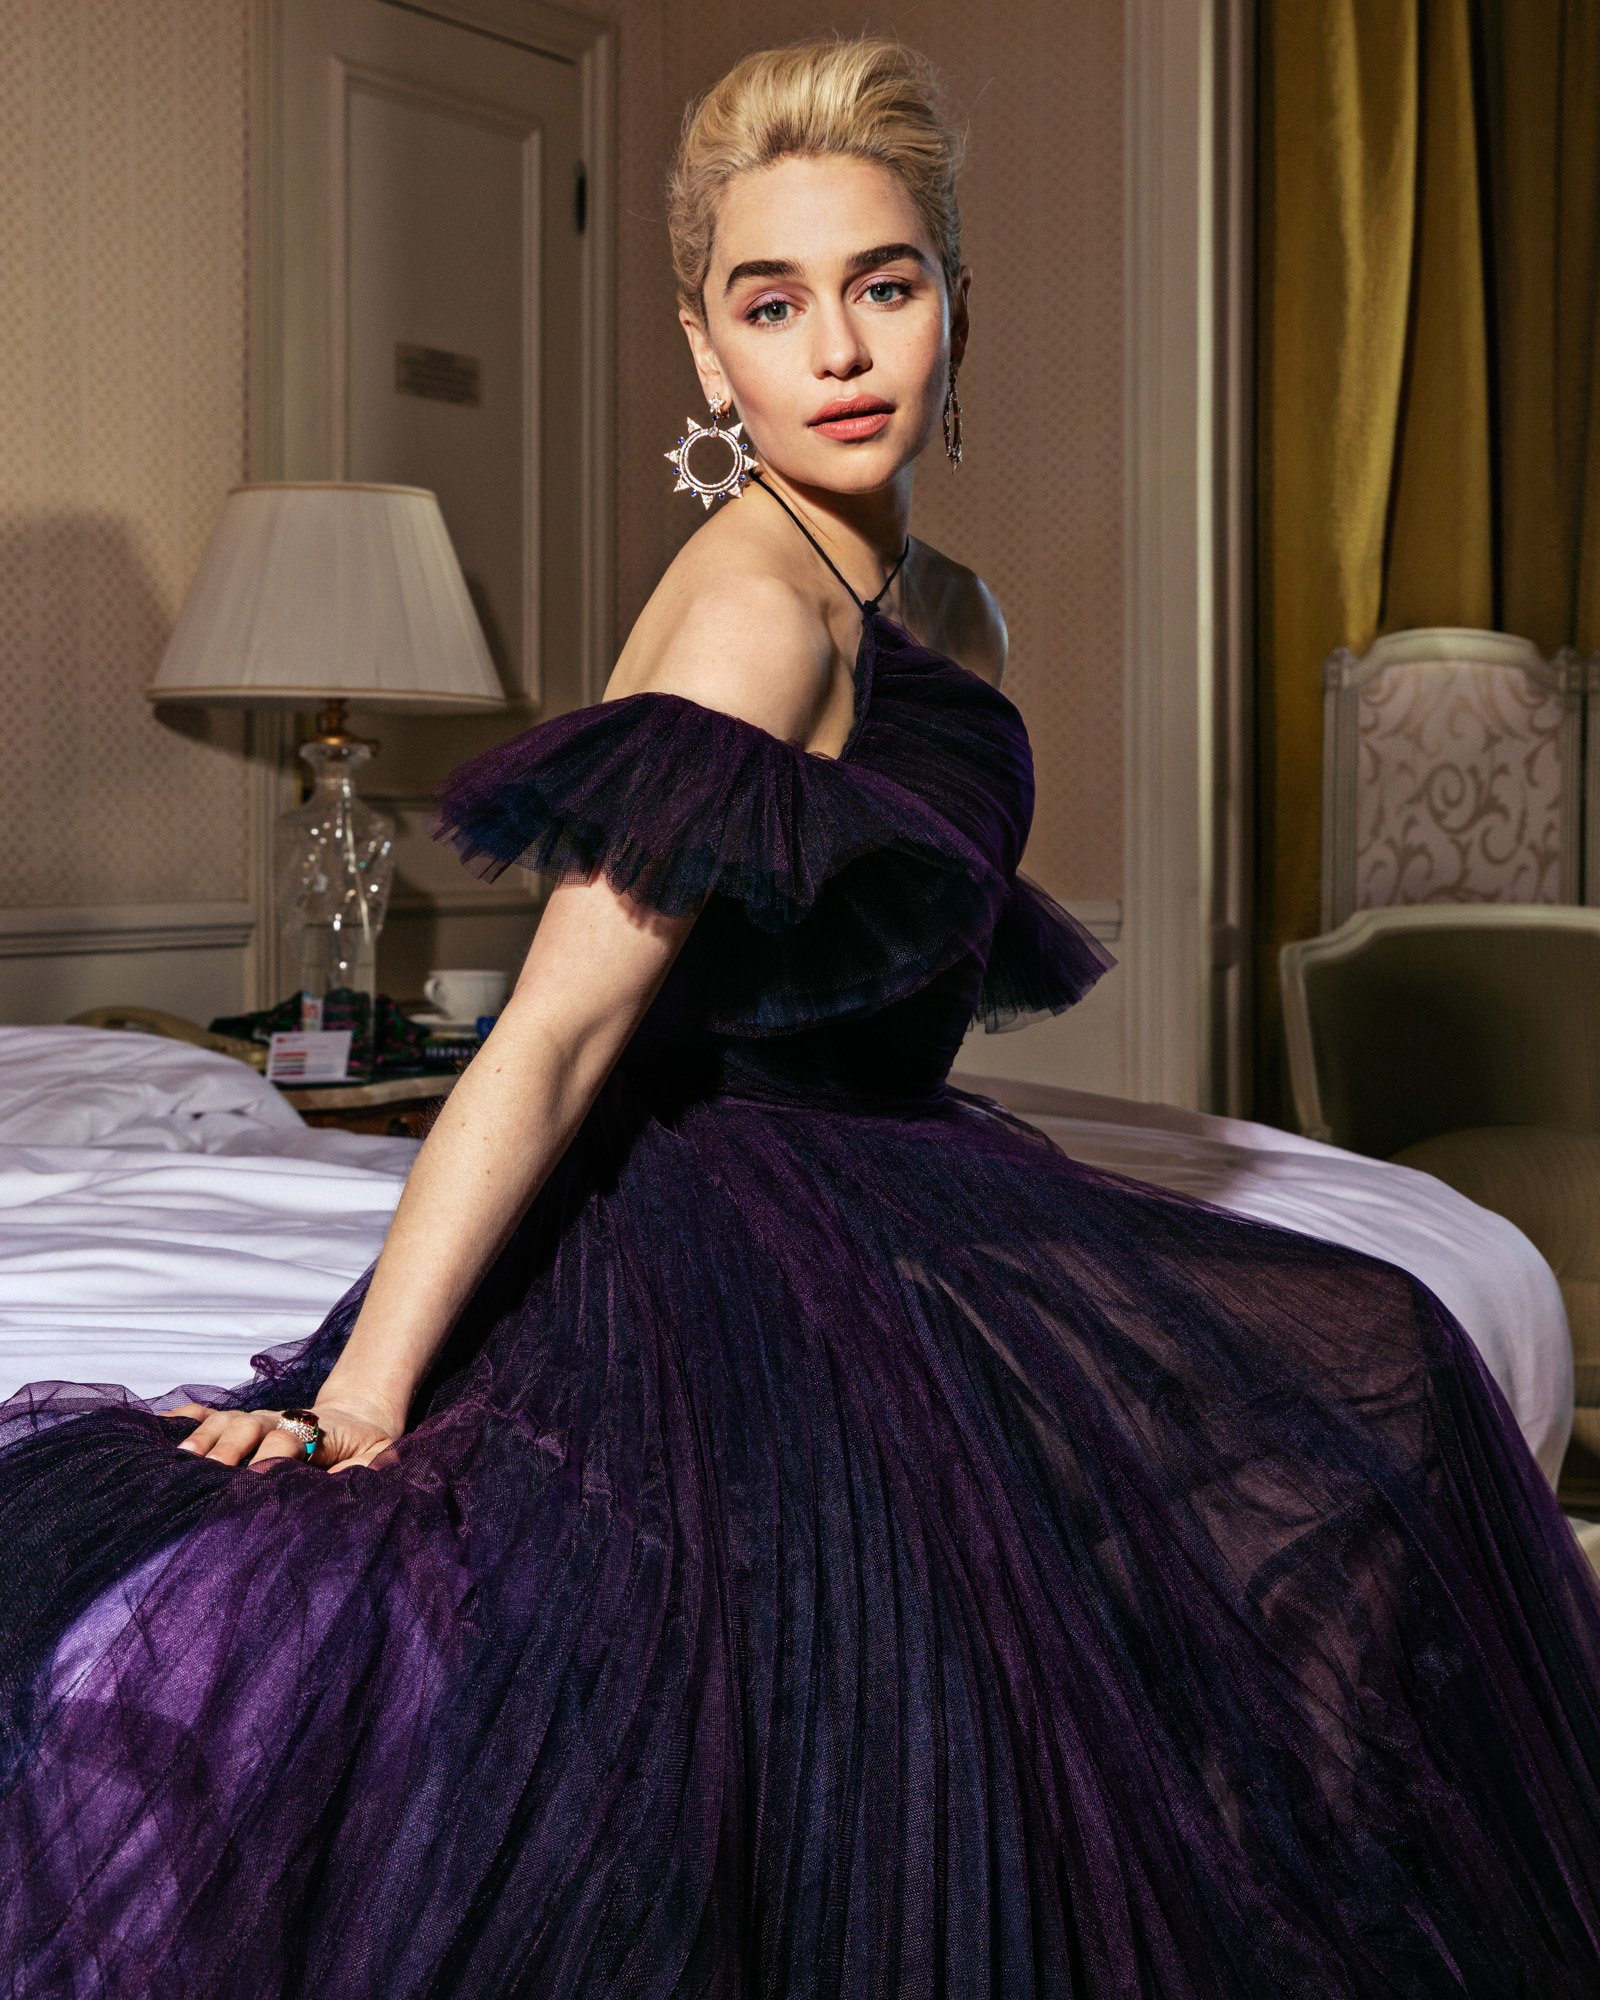 Emilia Clarke strikes a pose at #Cannes2018. See more V.F.-exclusive portraits at https://t.co/quDzuIJrLP https://t.co/g2bp7hvIka